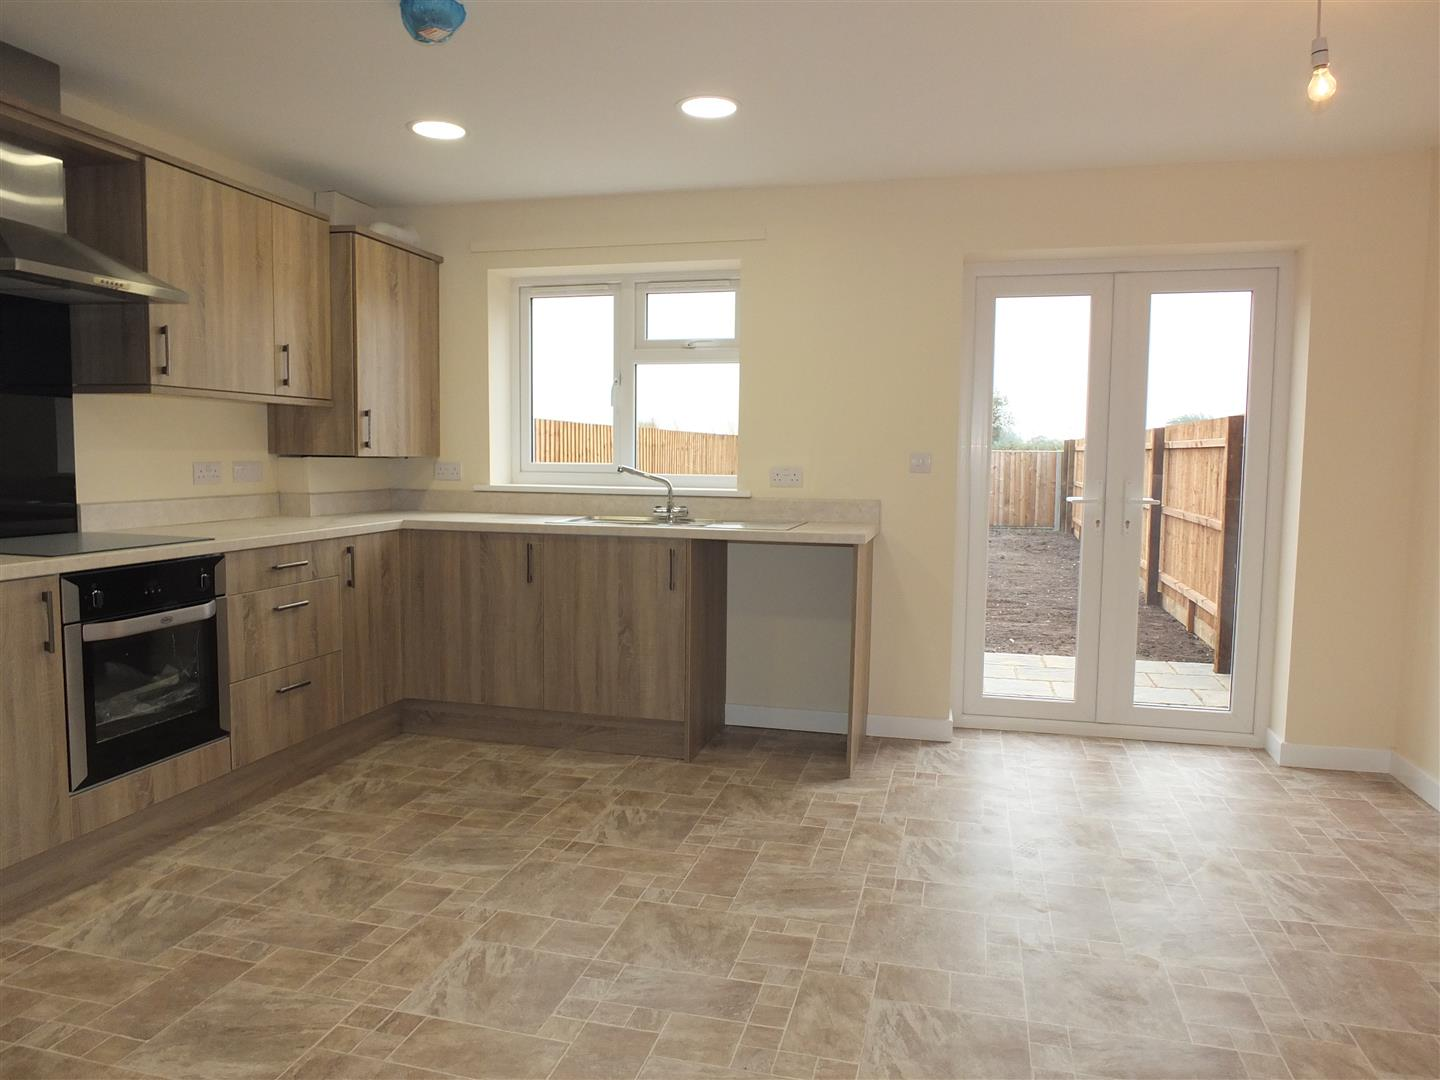 3 bed house to rent in Little London, Long Sutton  - Property Image 4